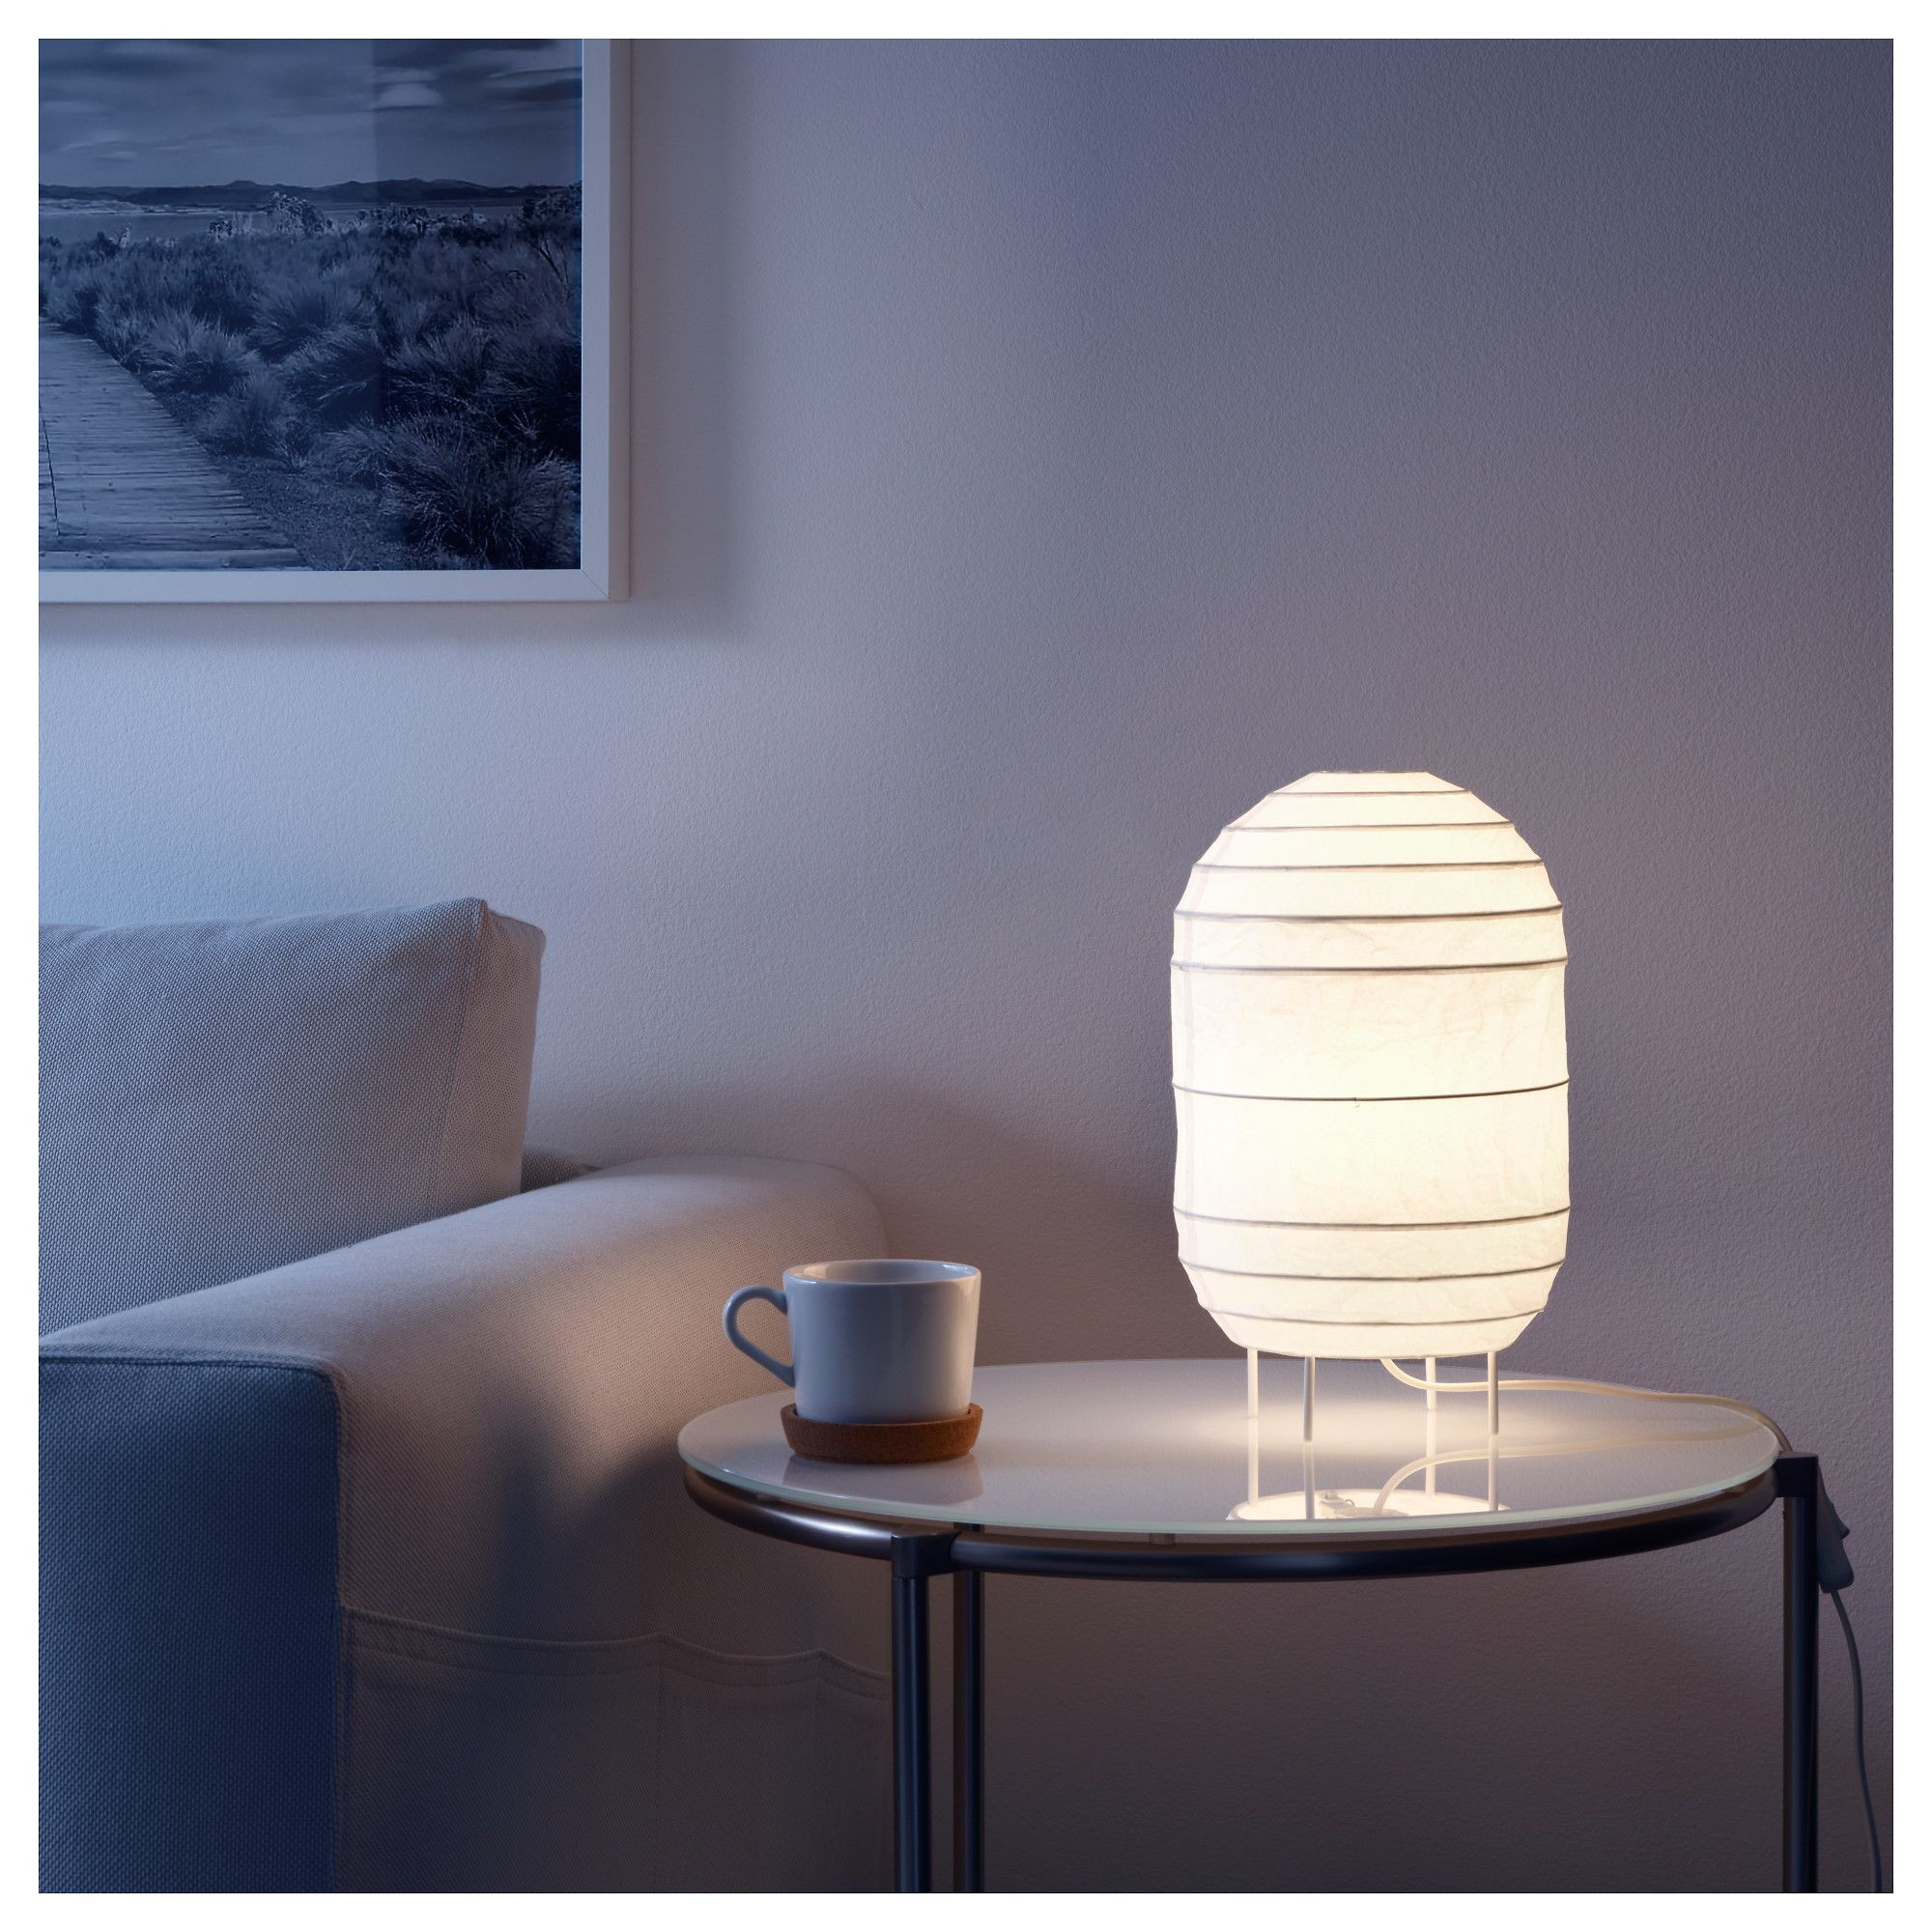 Fresh Home Furnishing Ideas And Affordable Furniture Interieur Lampen Woonkamer Moderne Tafellamp